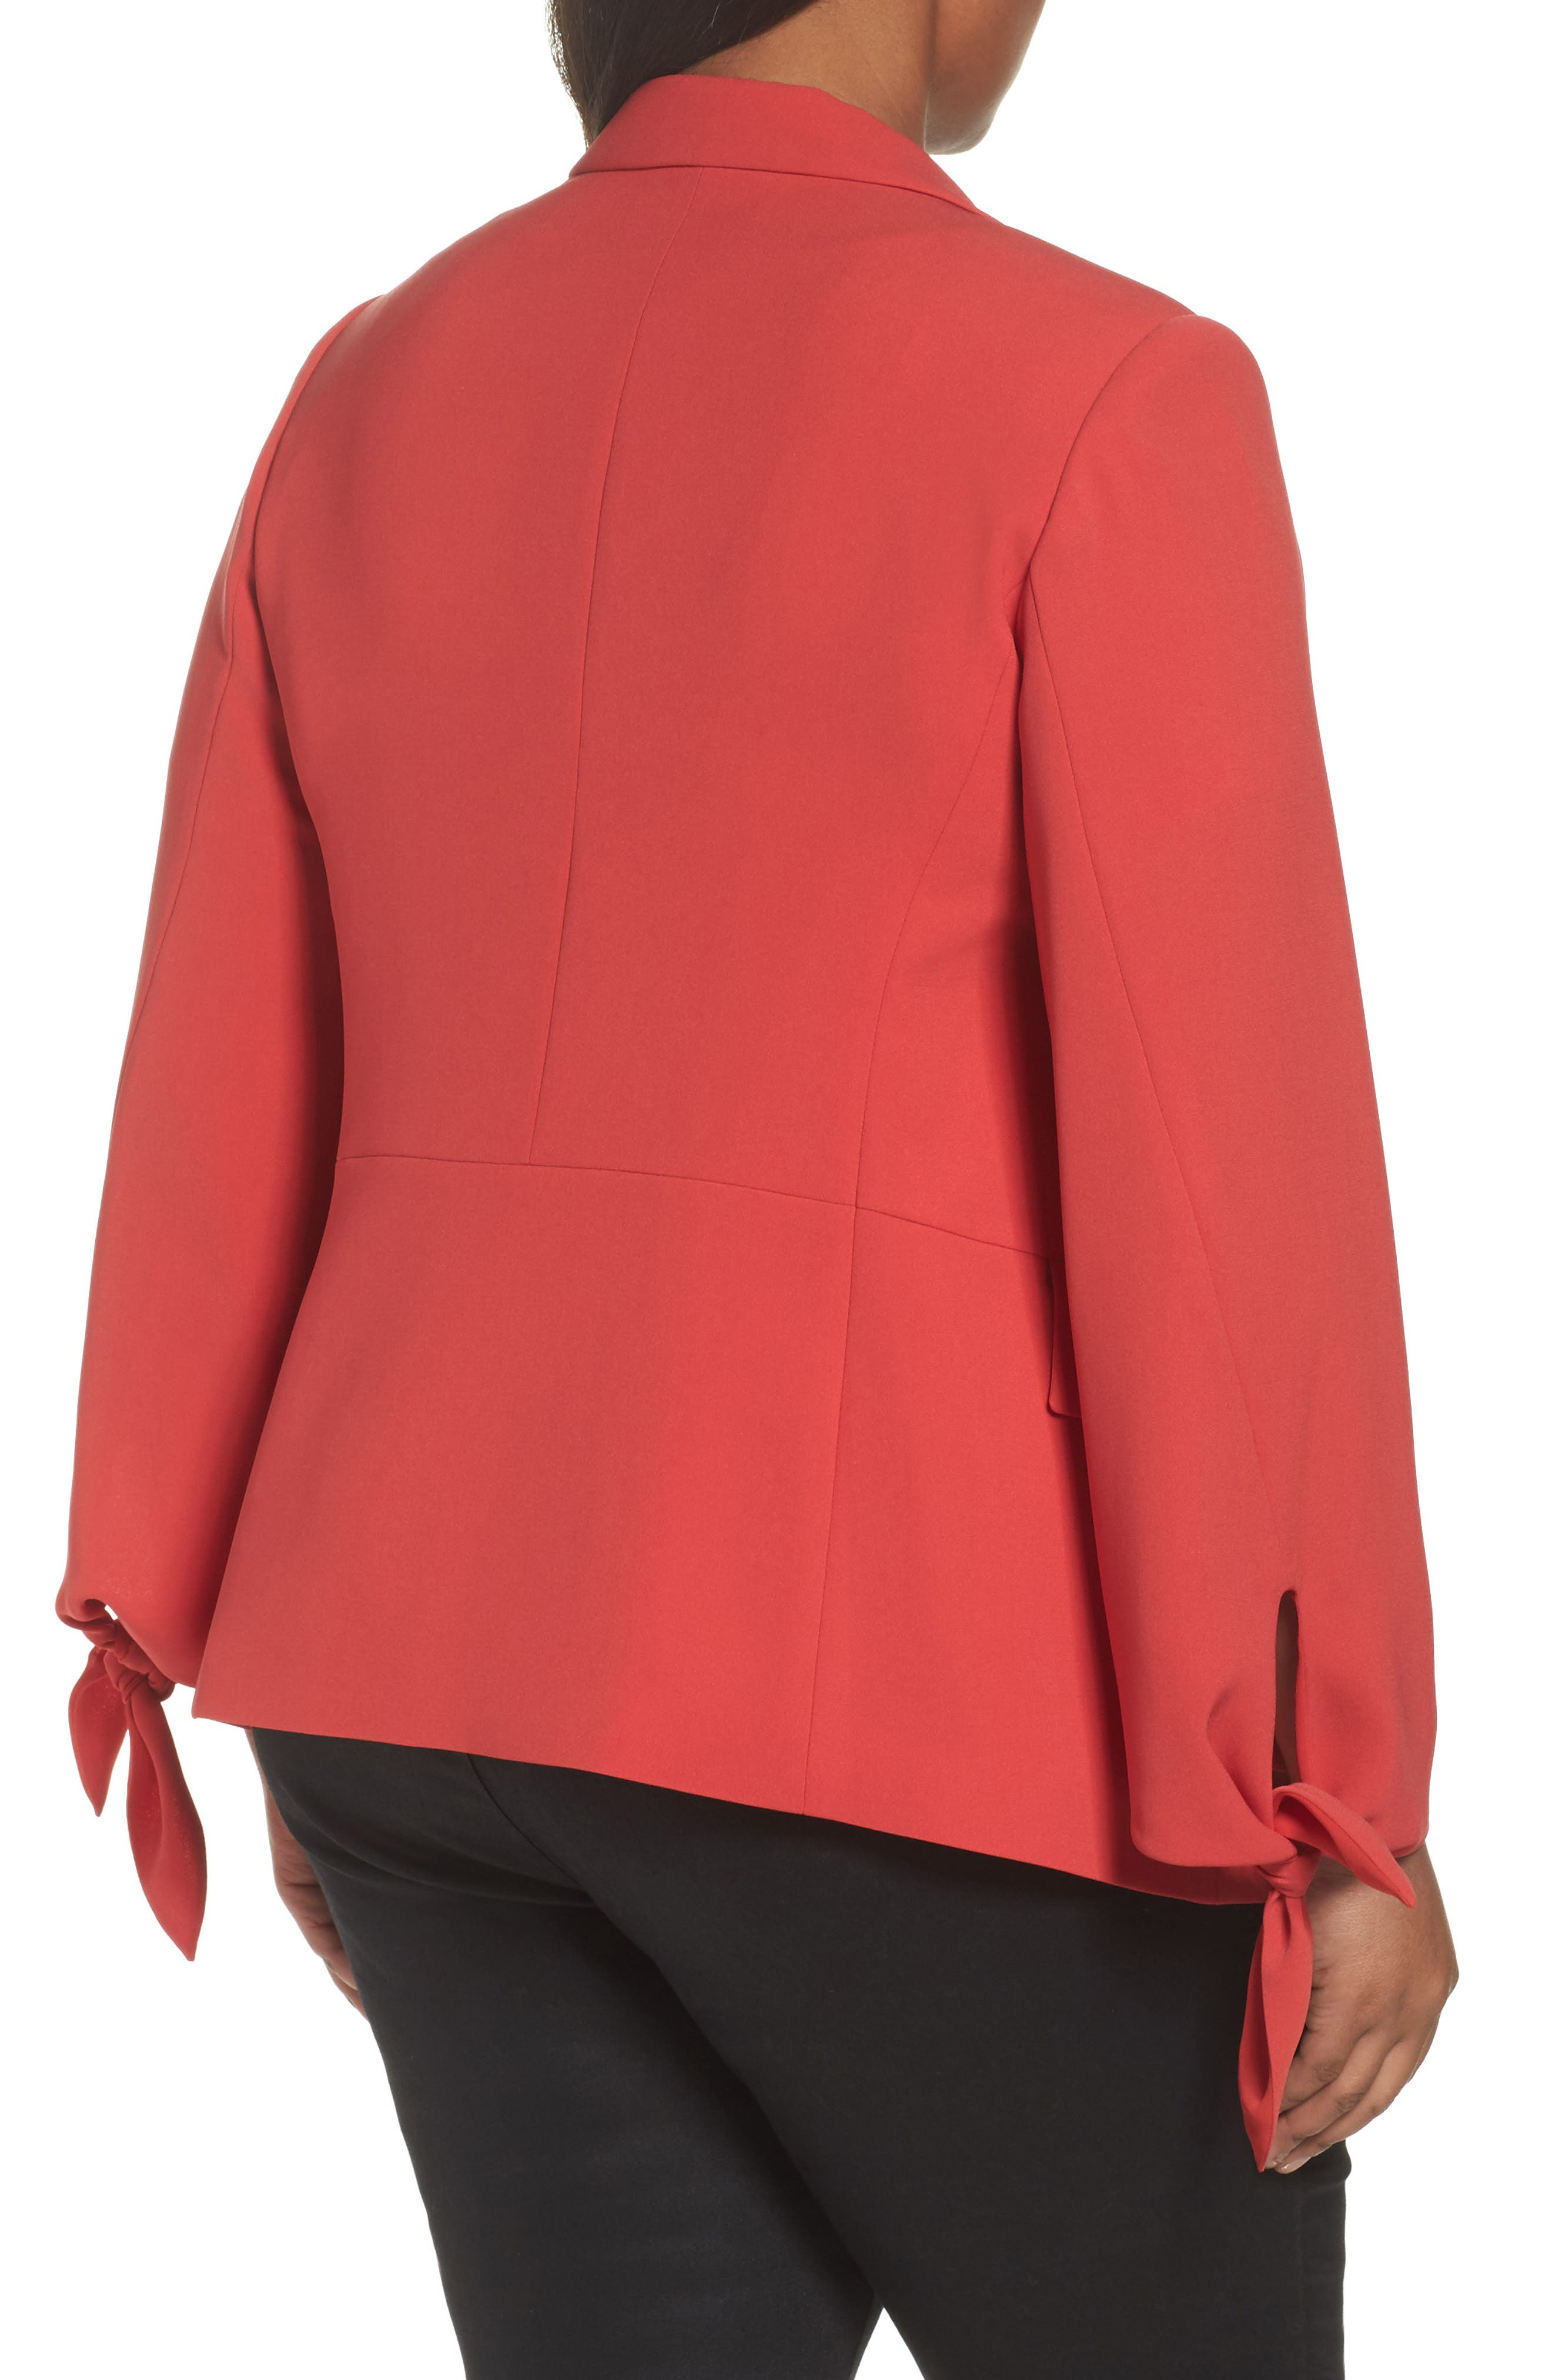 Bria Finesse Crepe Jacket,                             Alternate thumbnail 2, color,                             Salsa